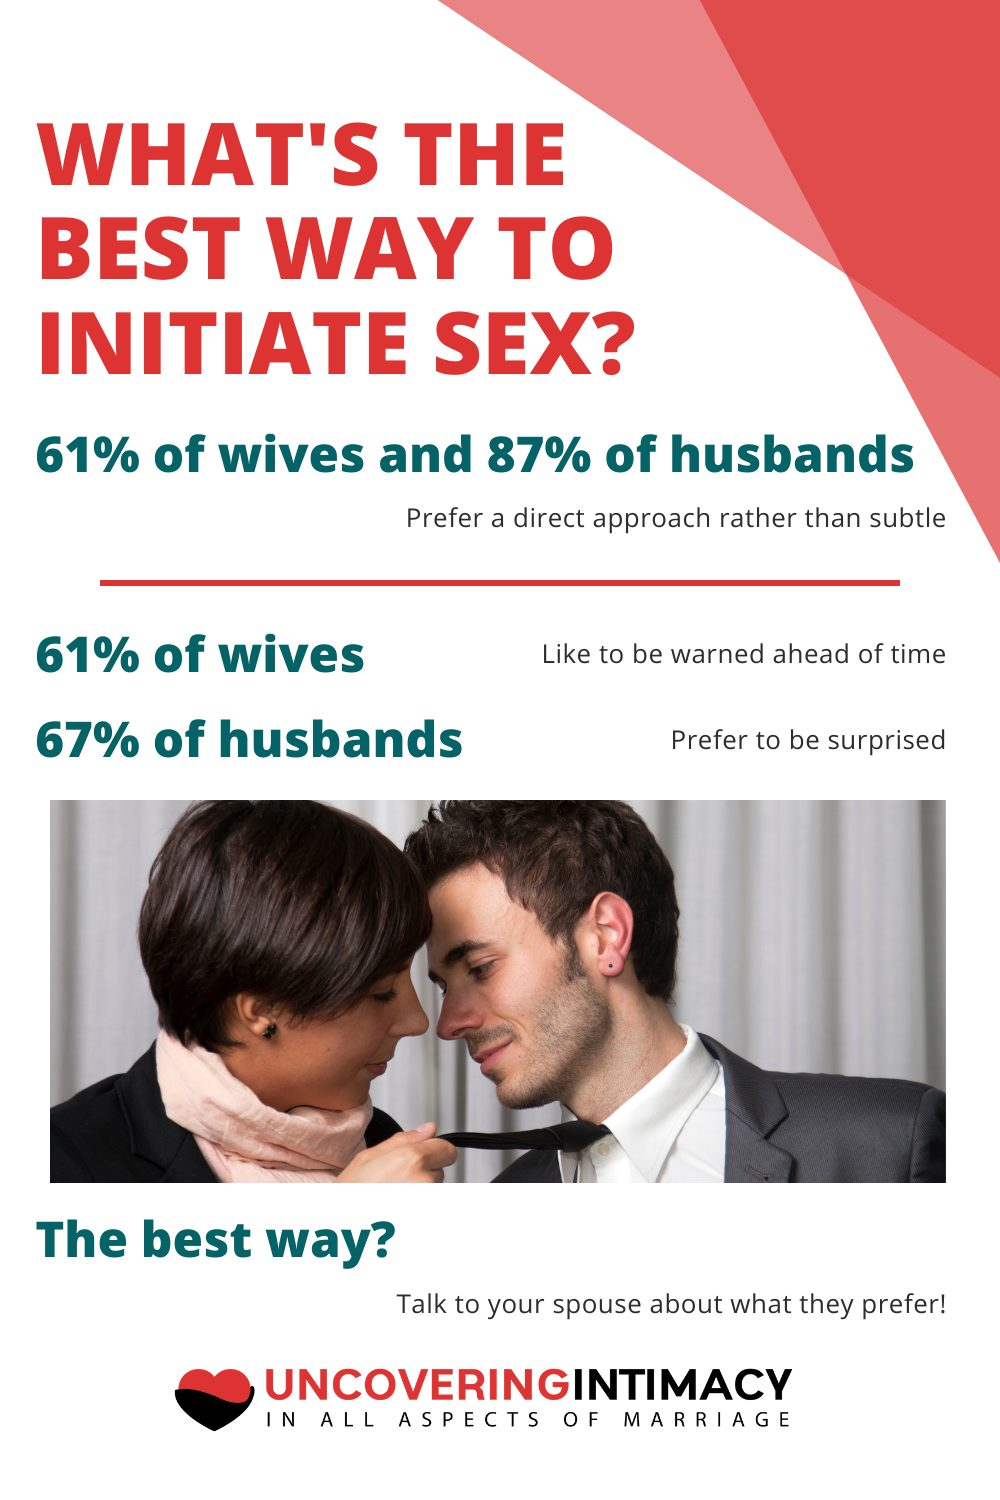 What's the best way to initiate sex?  Talk to your spouse!